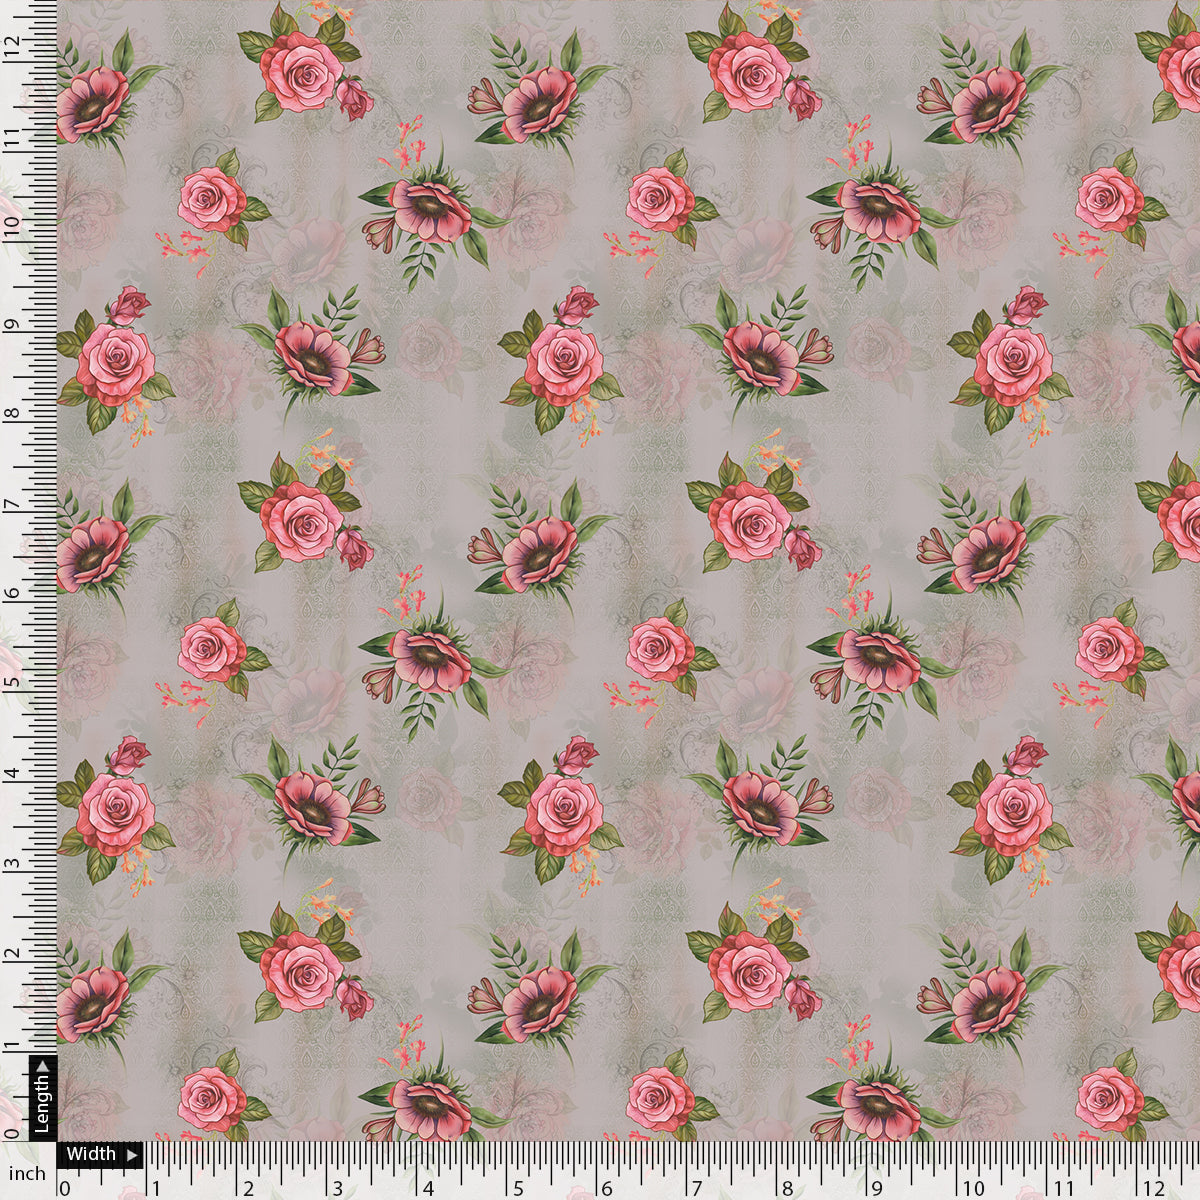 Pink Buttercup Flower Bunch Digital Printed Fabric